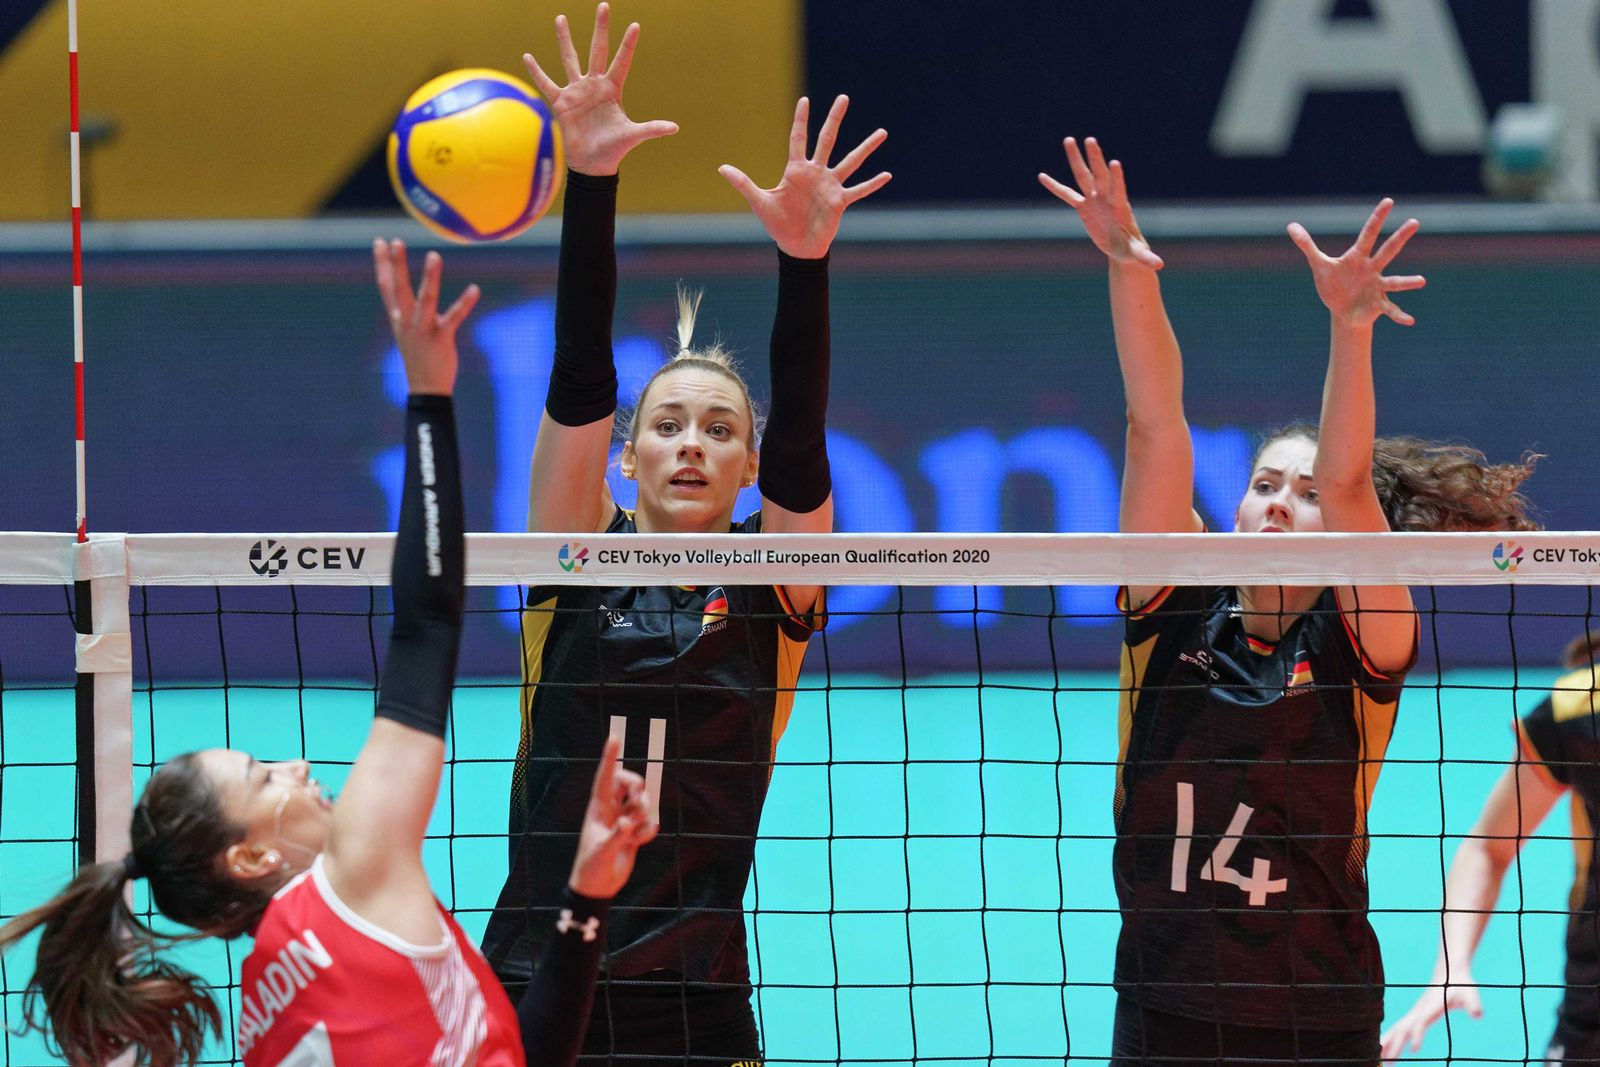 Olympic Qualifier (OKT) Volleyball final Turkey vs Germany, Apeldoorn, Netherlands - 12 Jan 2020